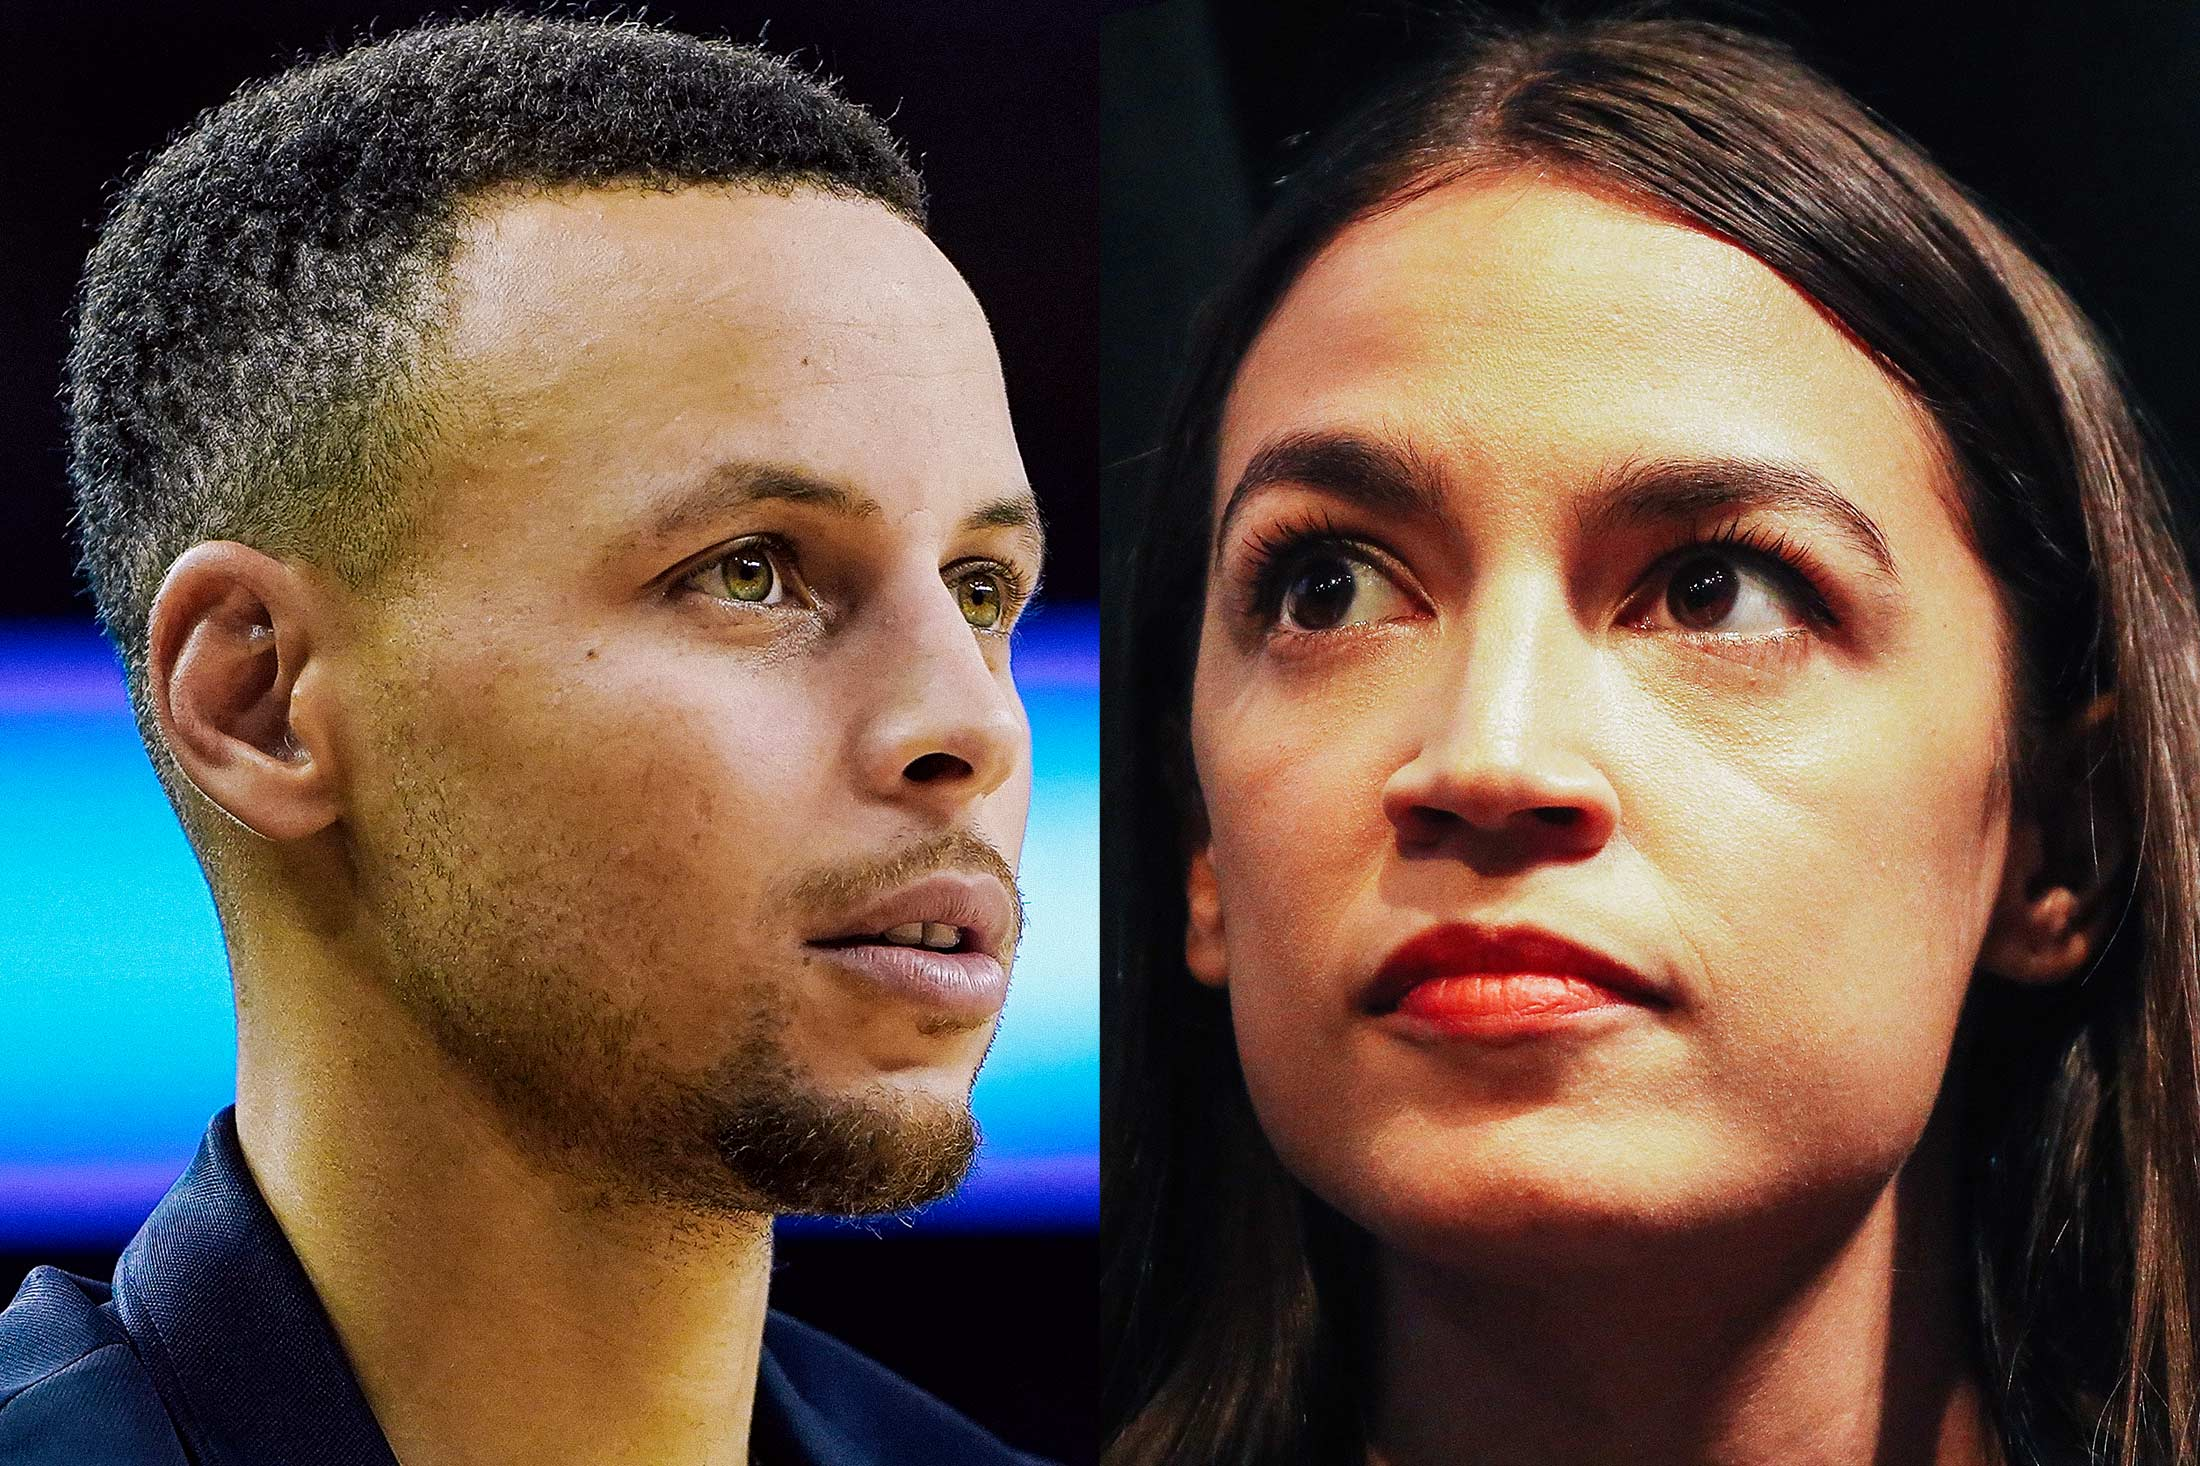 Stephen Curry, Alexandria Ocasio-Cortez.